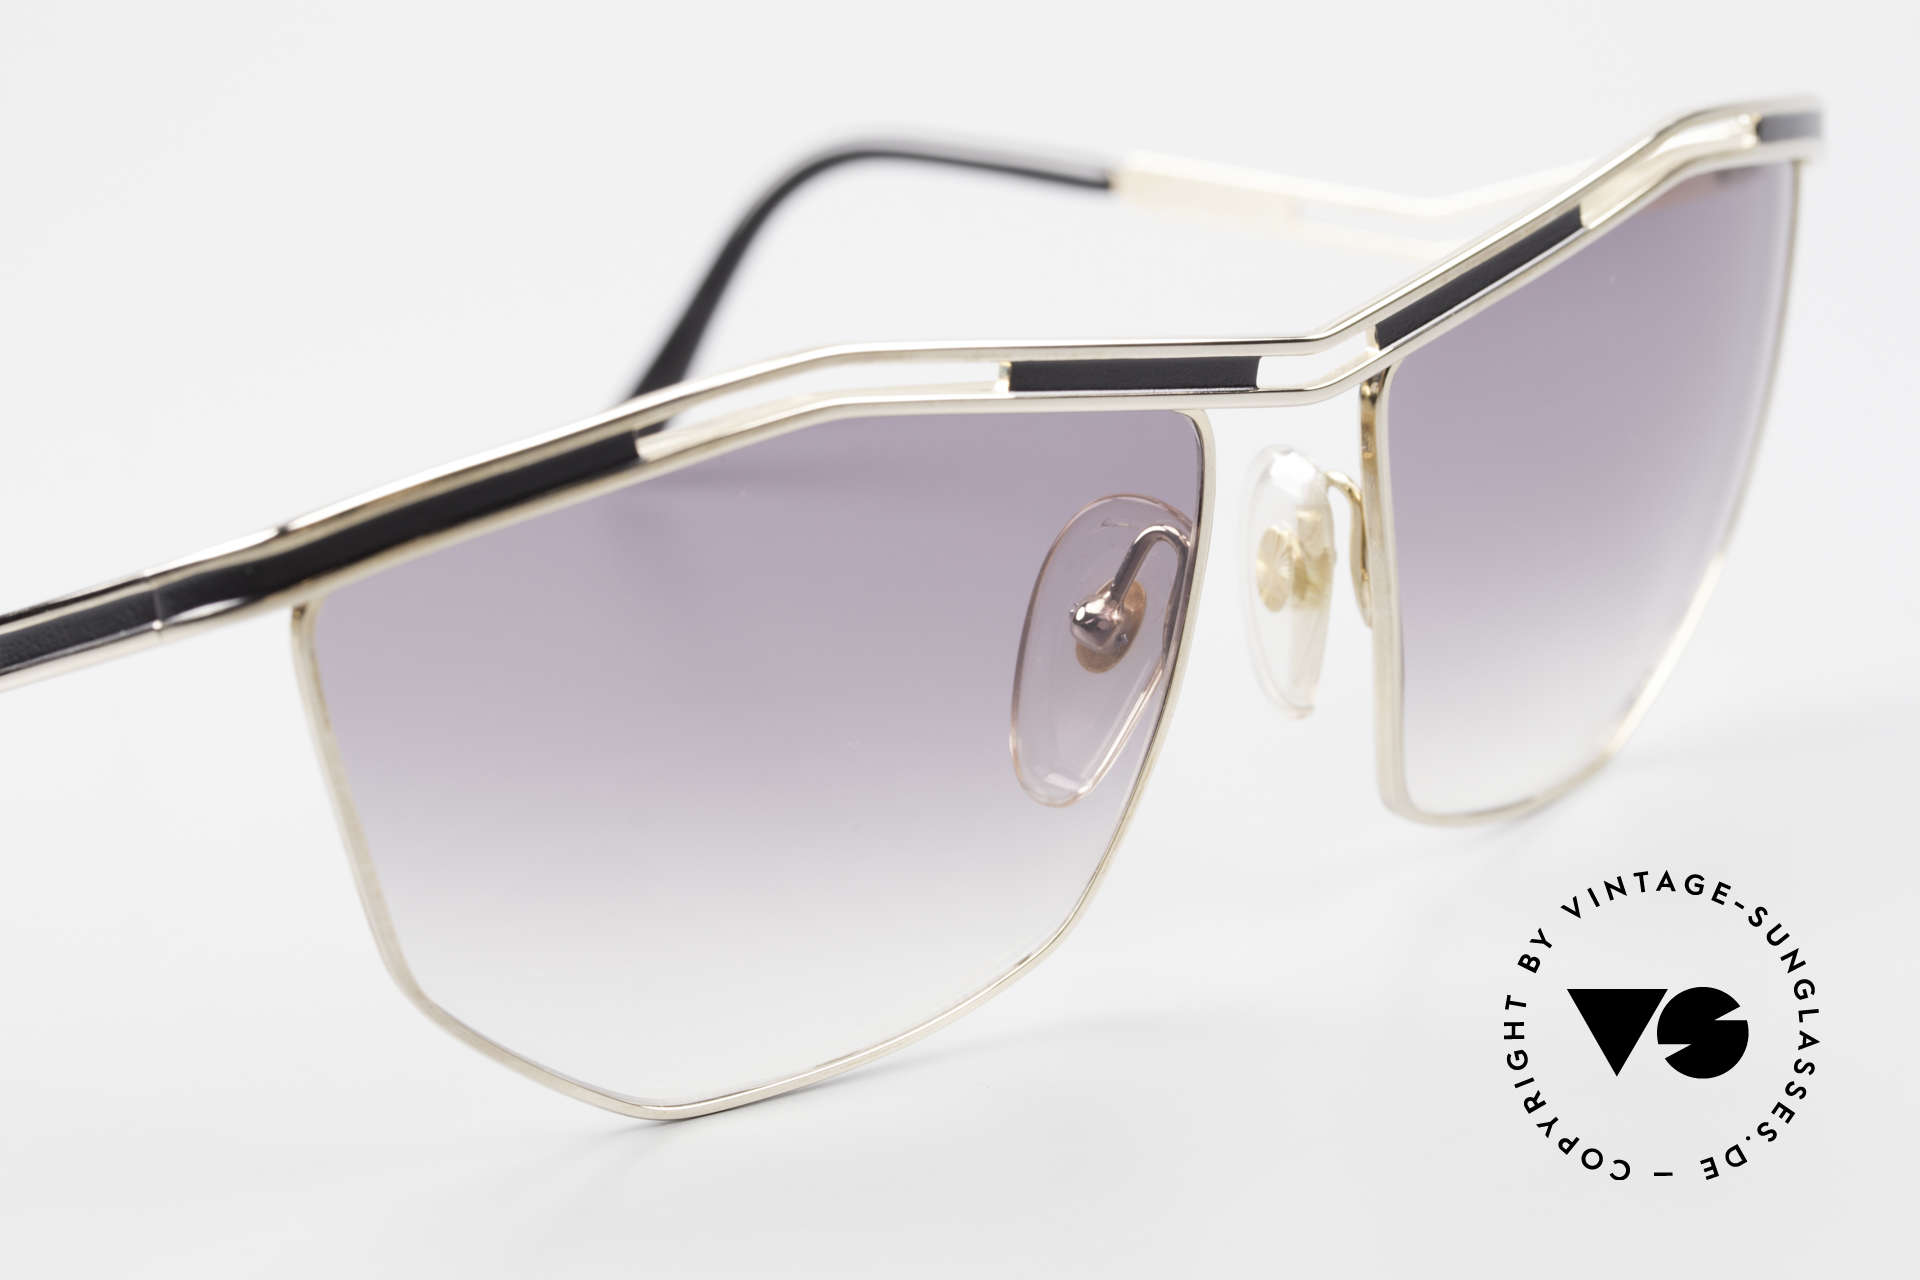 Paloma Picasso 1478 No Retro Sunglasses 90's Rarity, unworn (like all our rare vintage designer sunnies), Made for Women